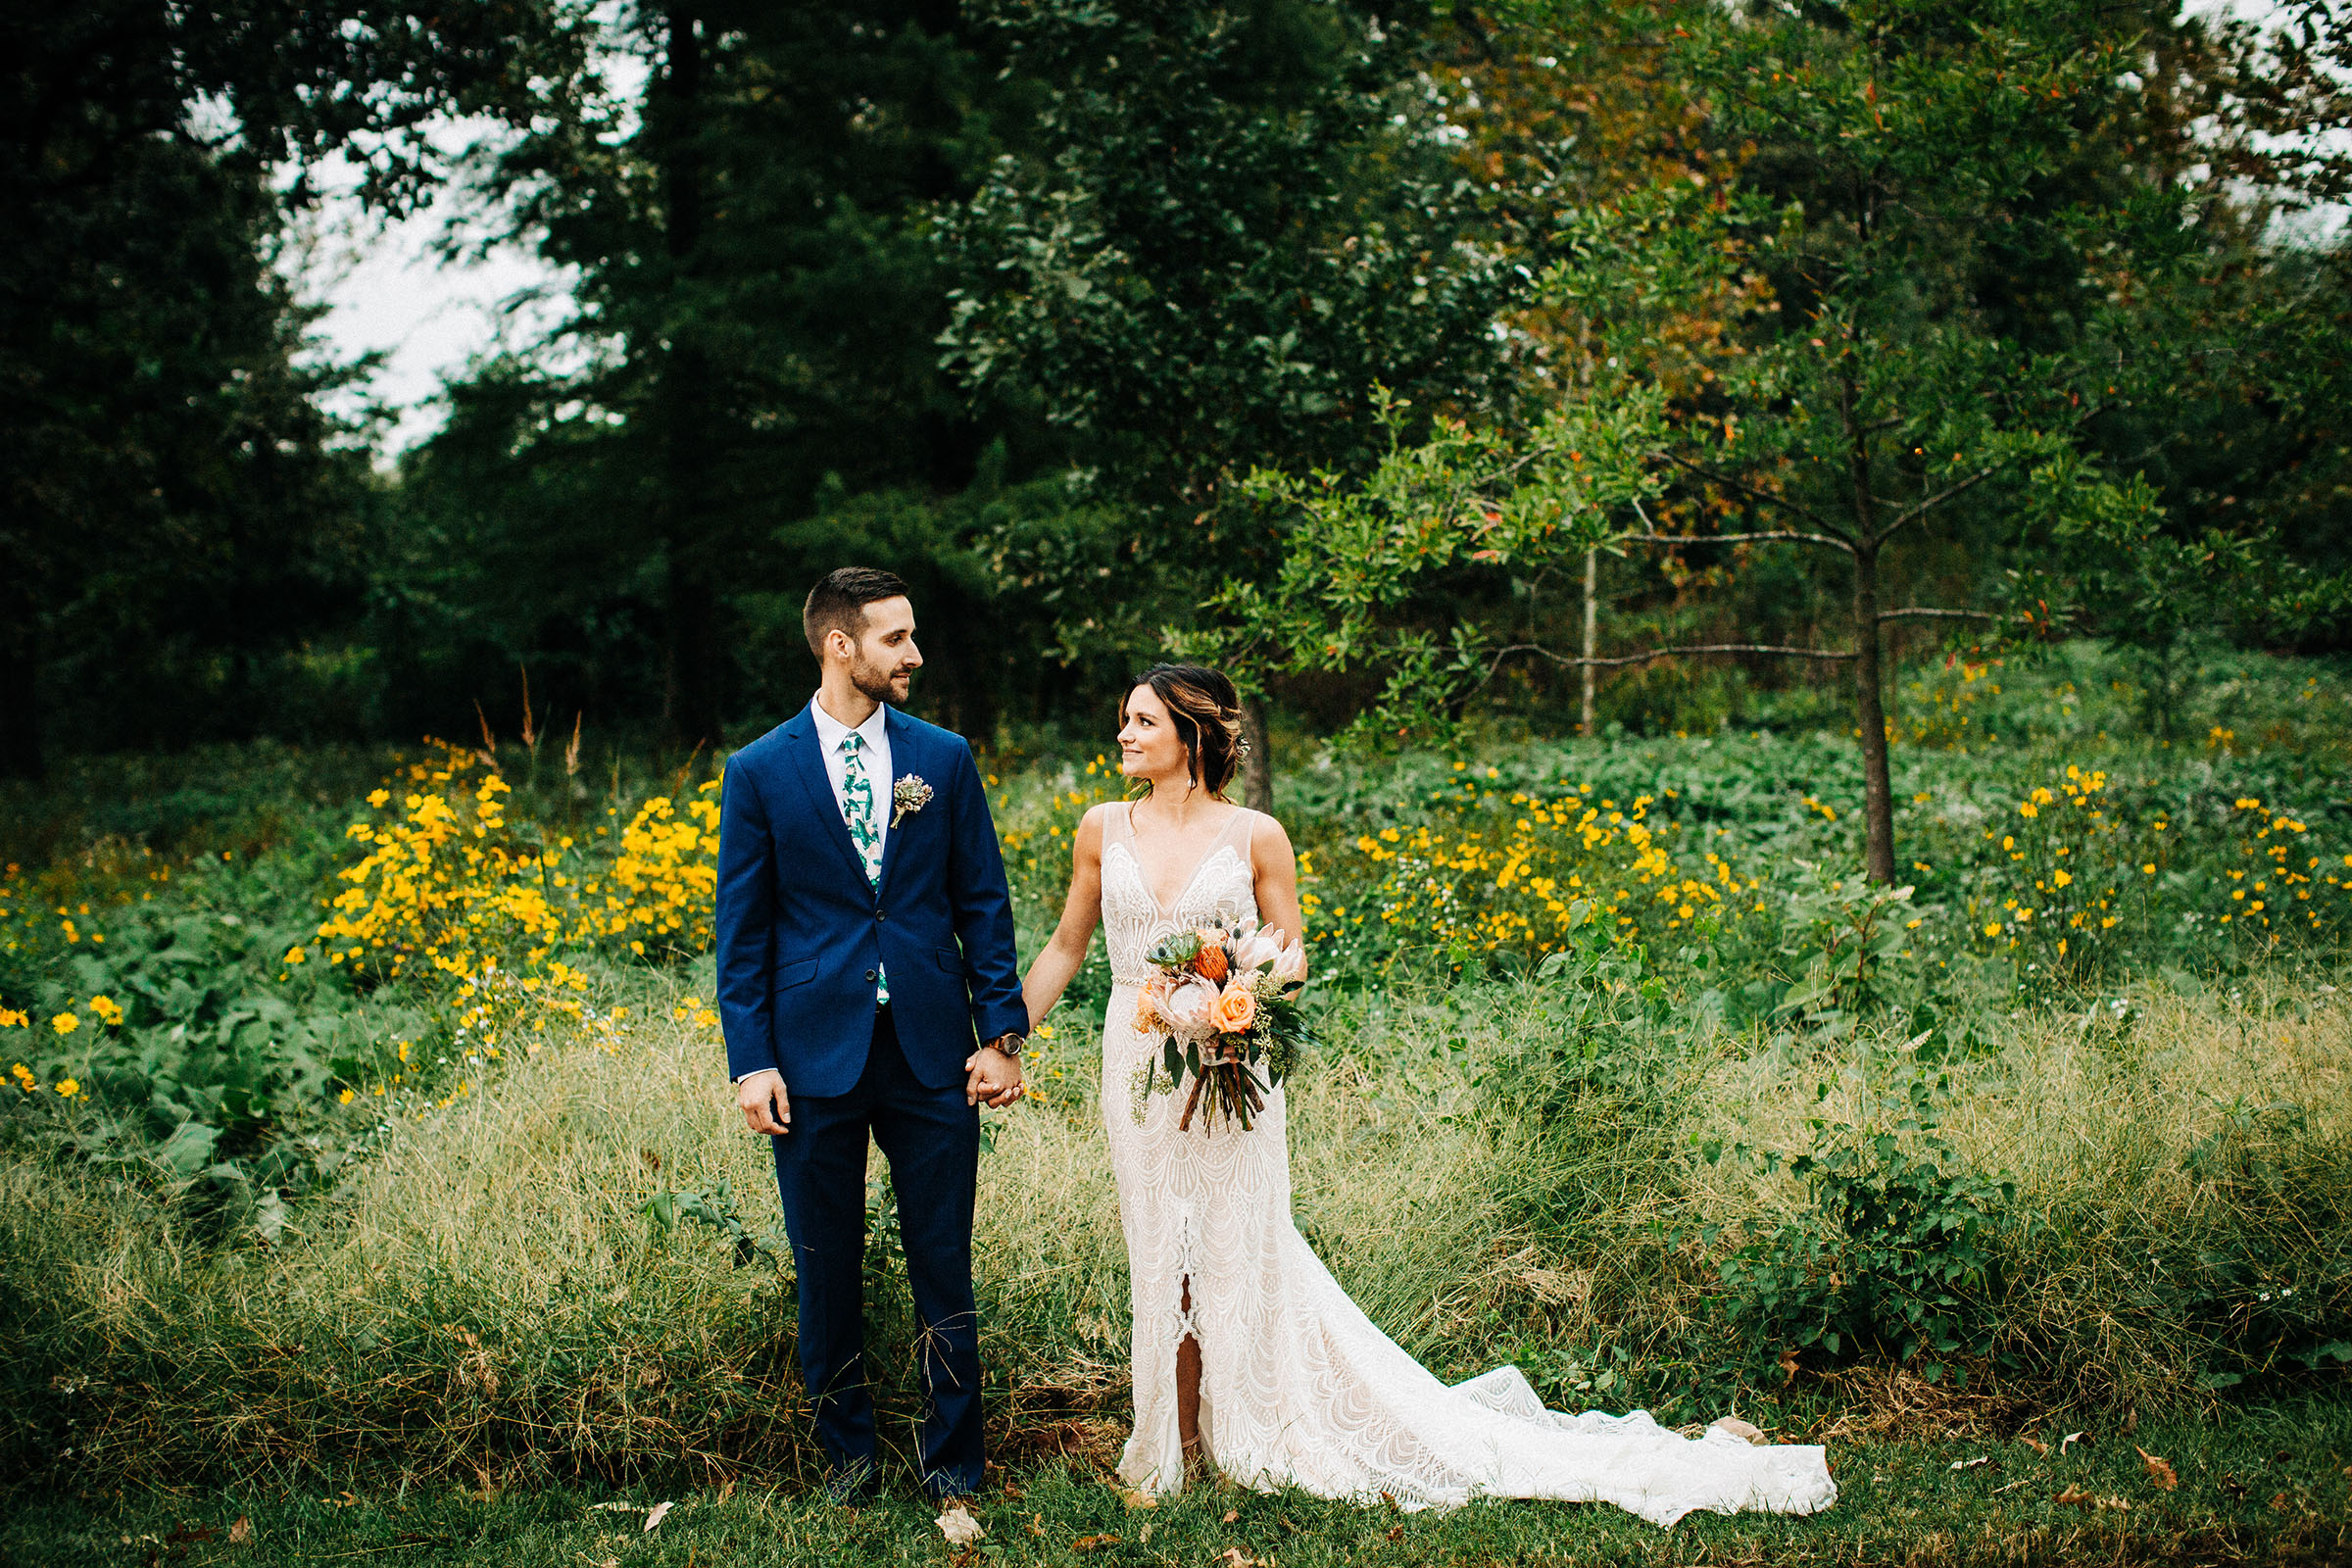 Ashley Pieper Photography | Forest Park Wedding | St. Louis Wedding Photographer | Wildflower Wedding | Star Wars Inspired Wedding | St. Louis Missouri-16.jpg